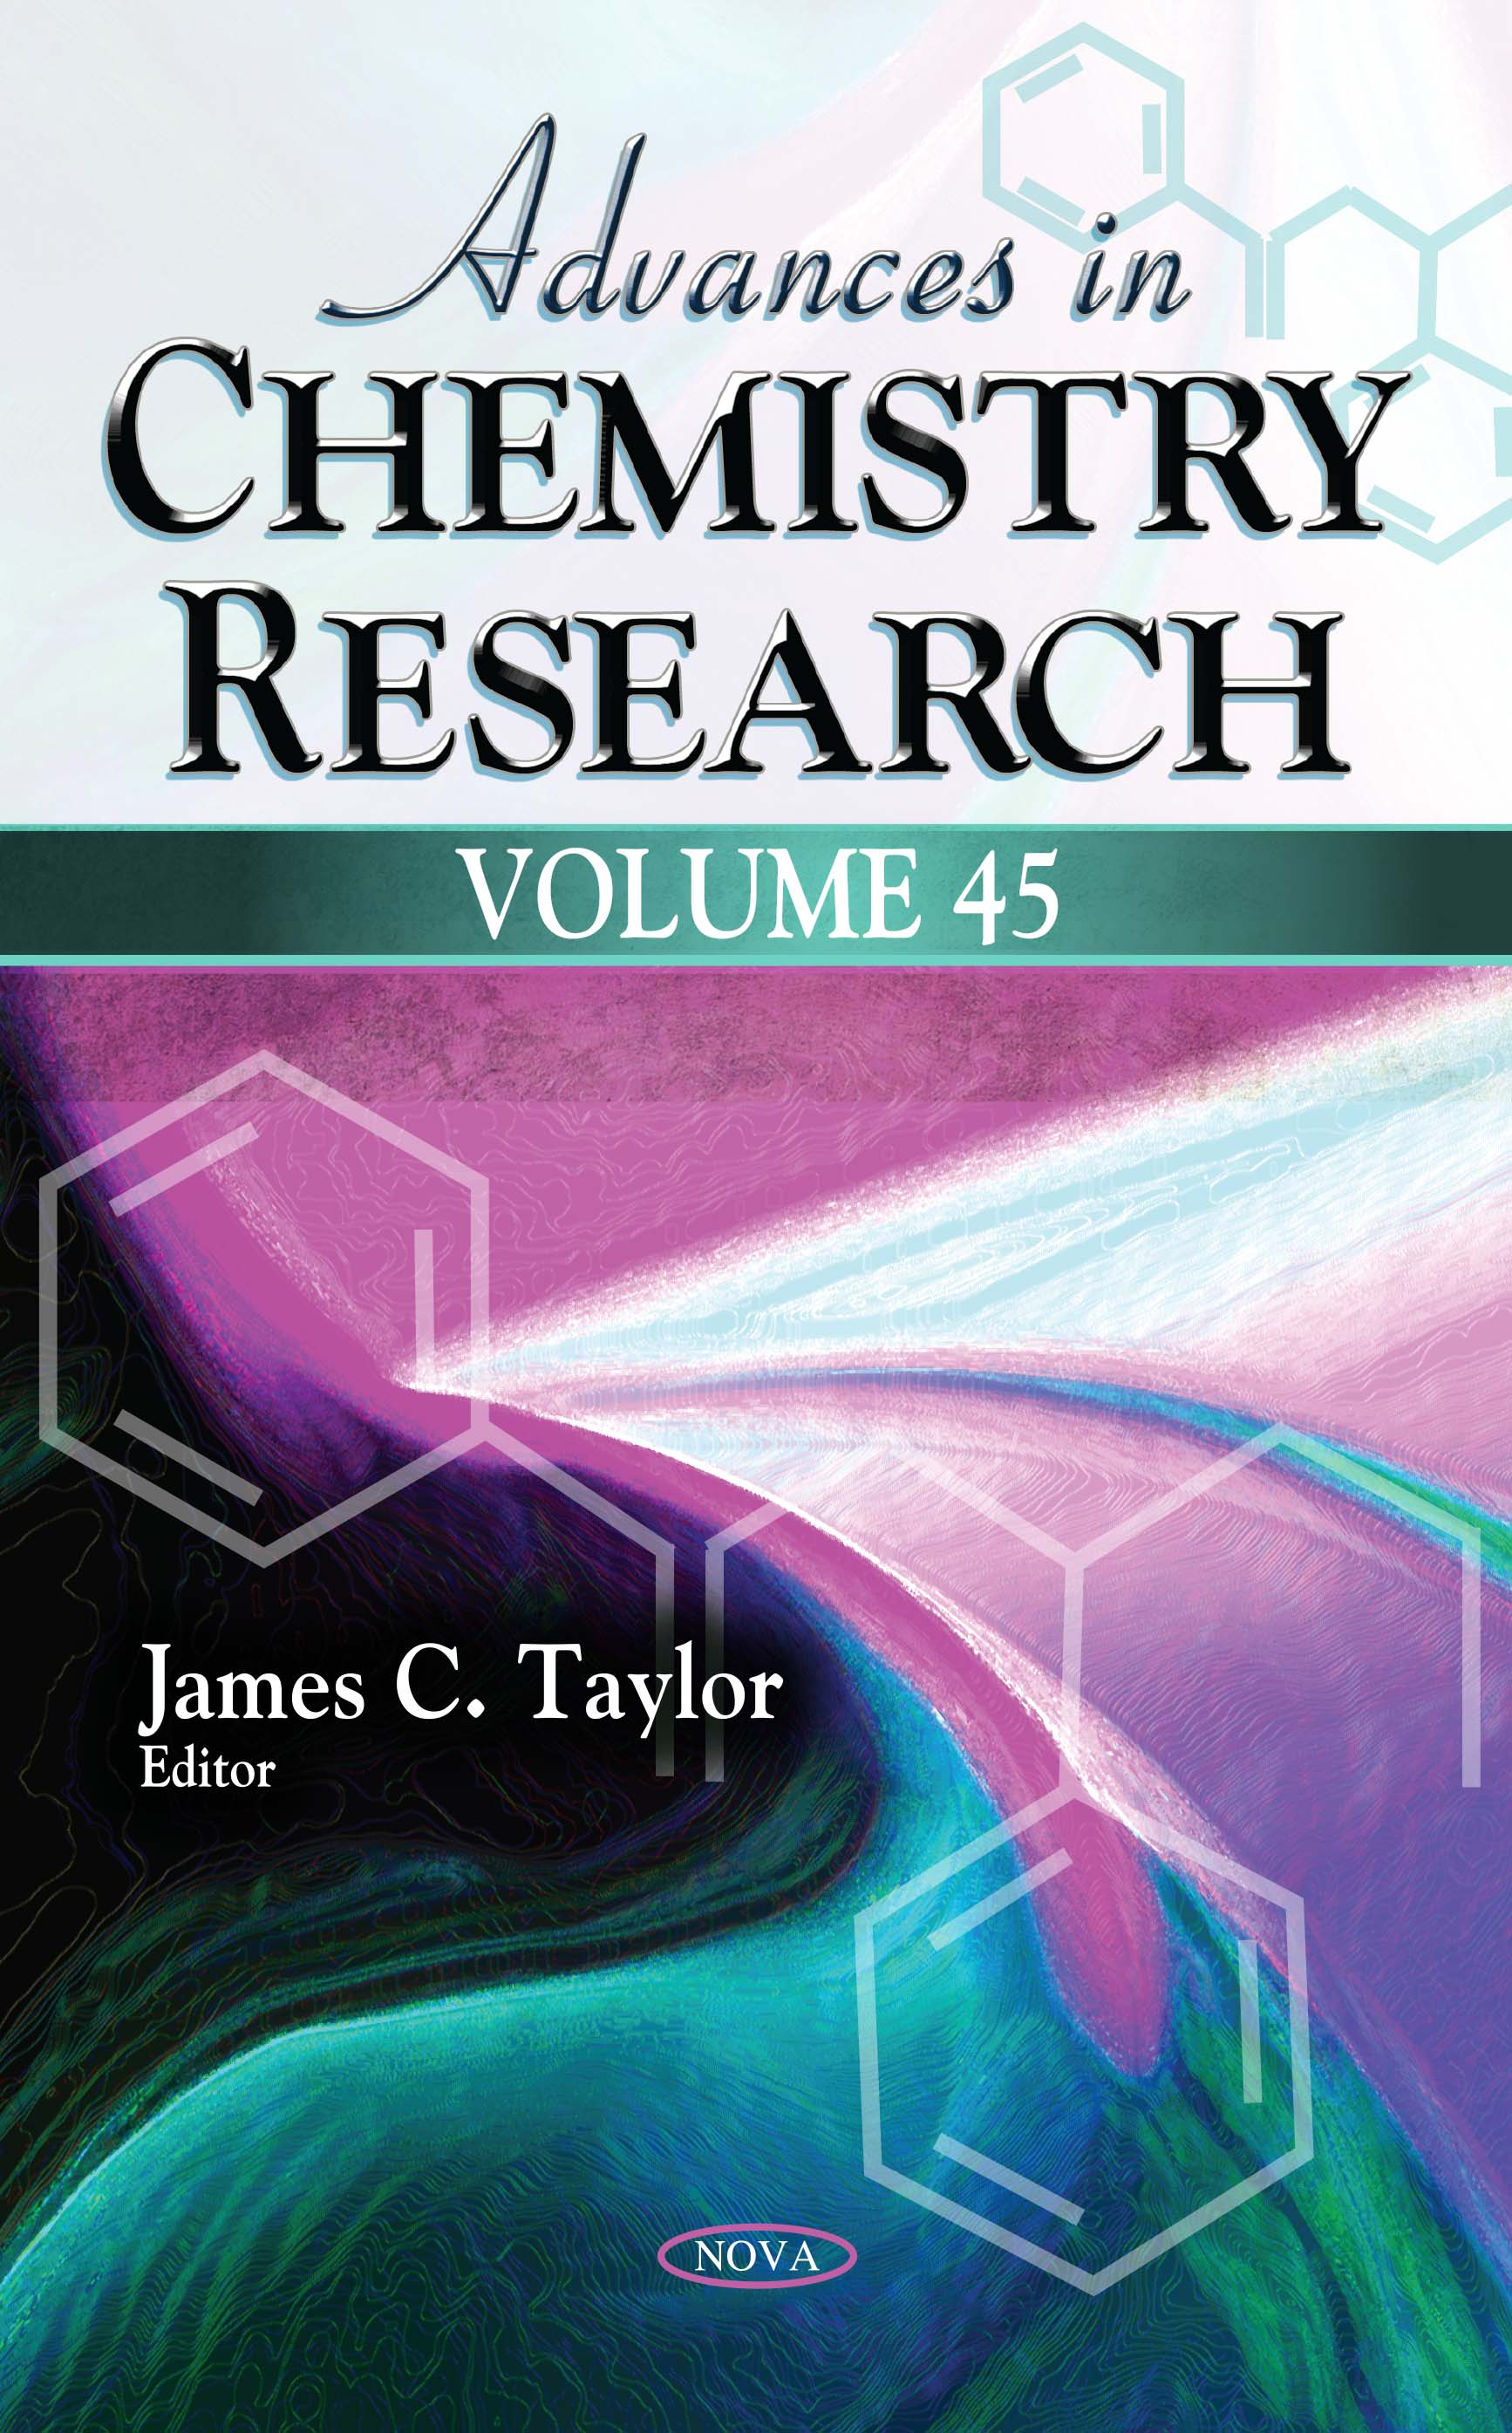 Advances in Chemistry Research. Volume 45